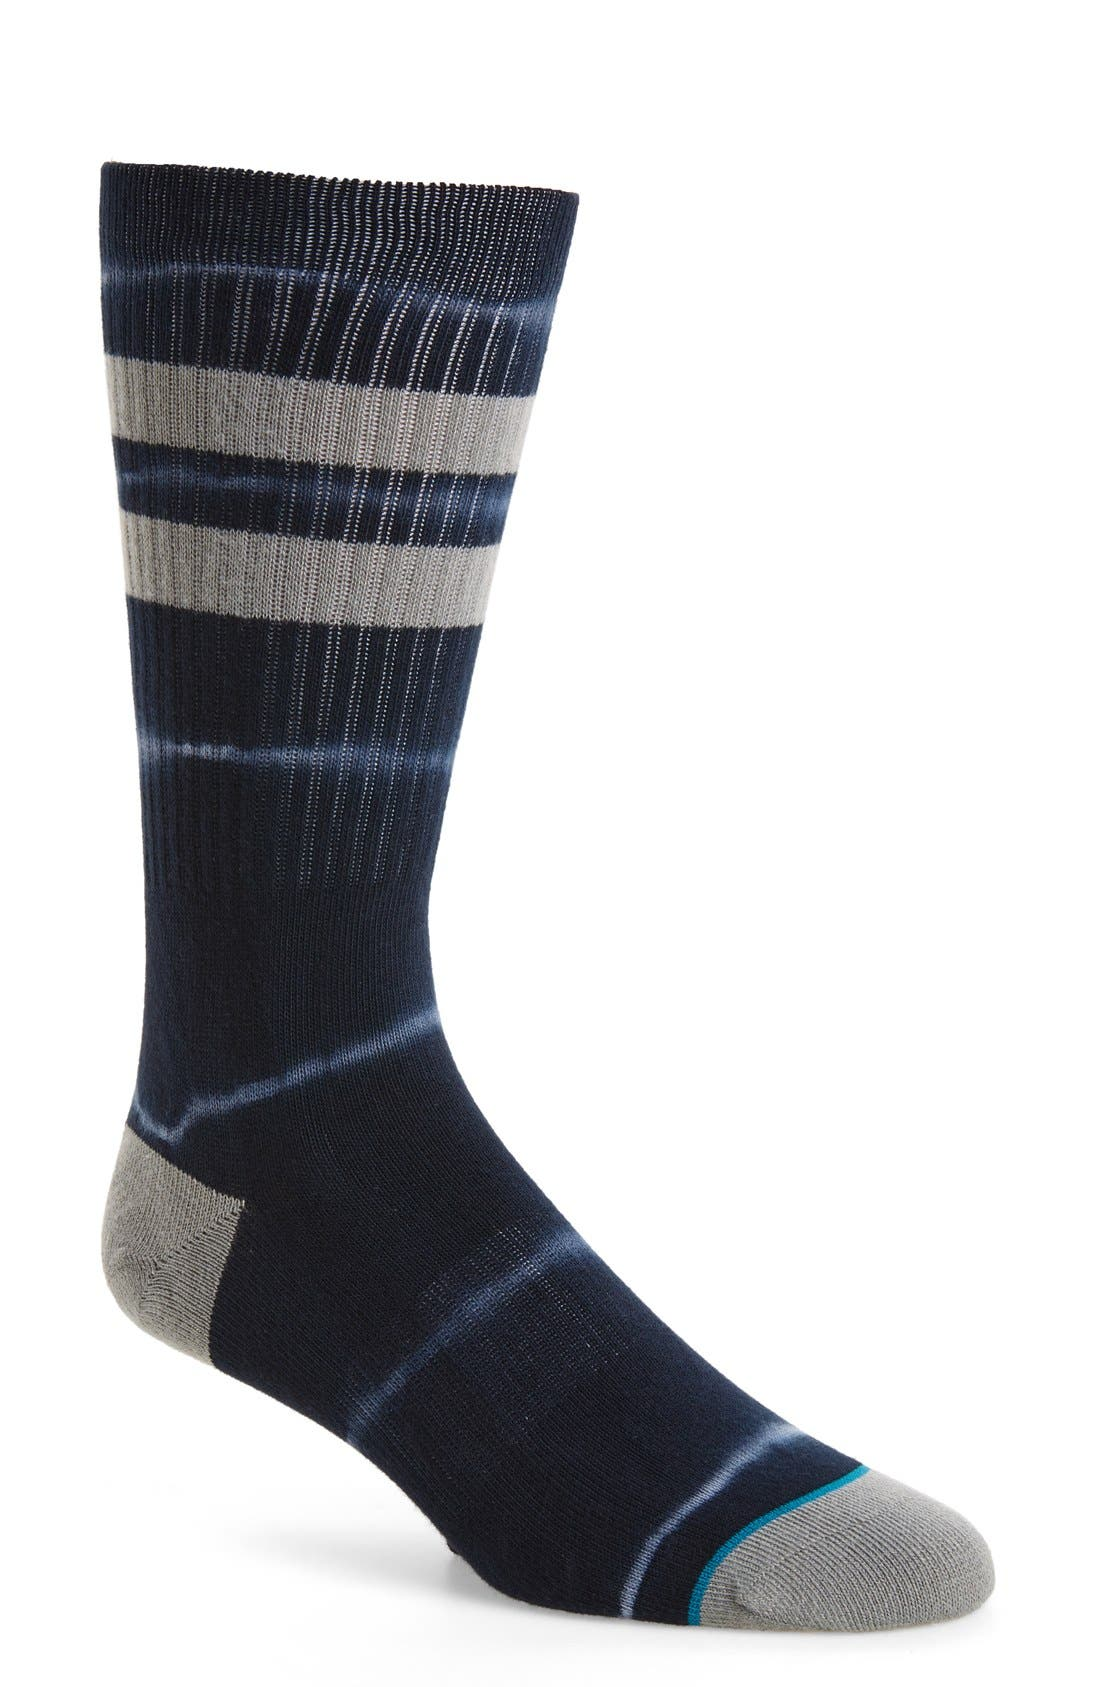 Alternate Image 1 Selected - Stance 6AM Classic Crew Socks